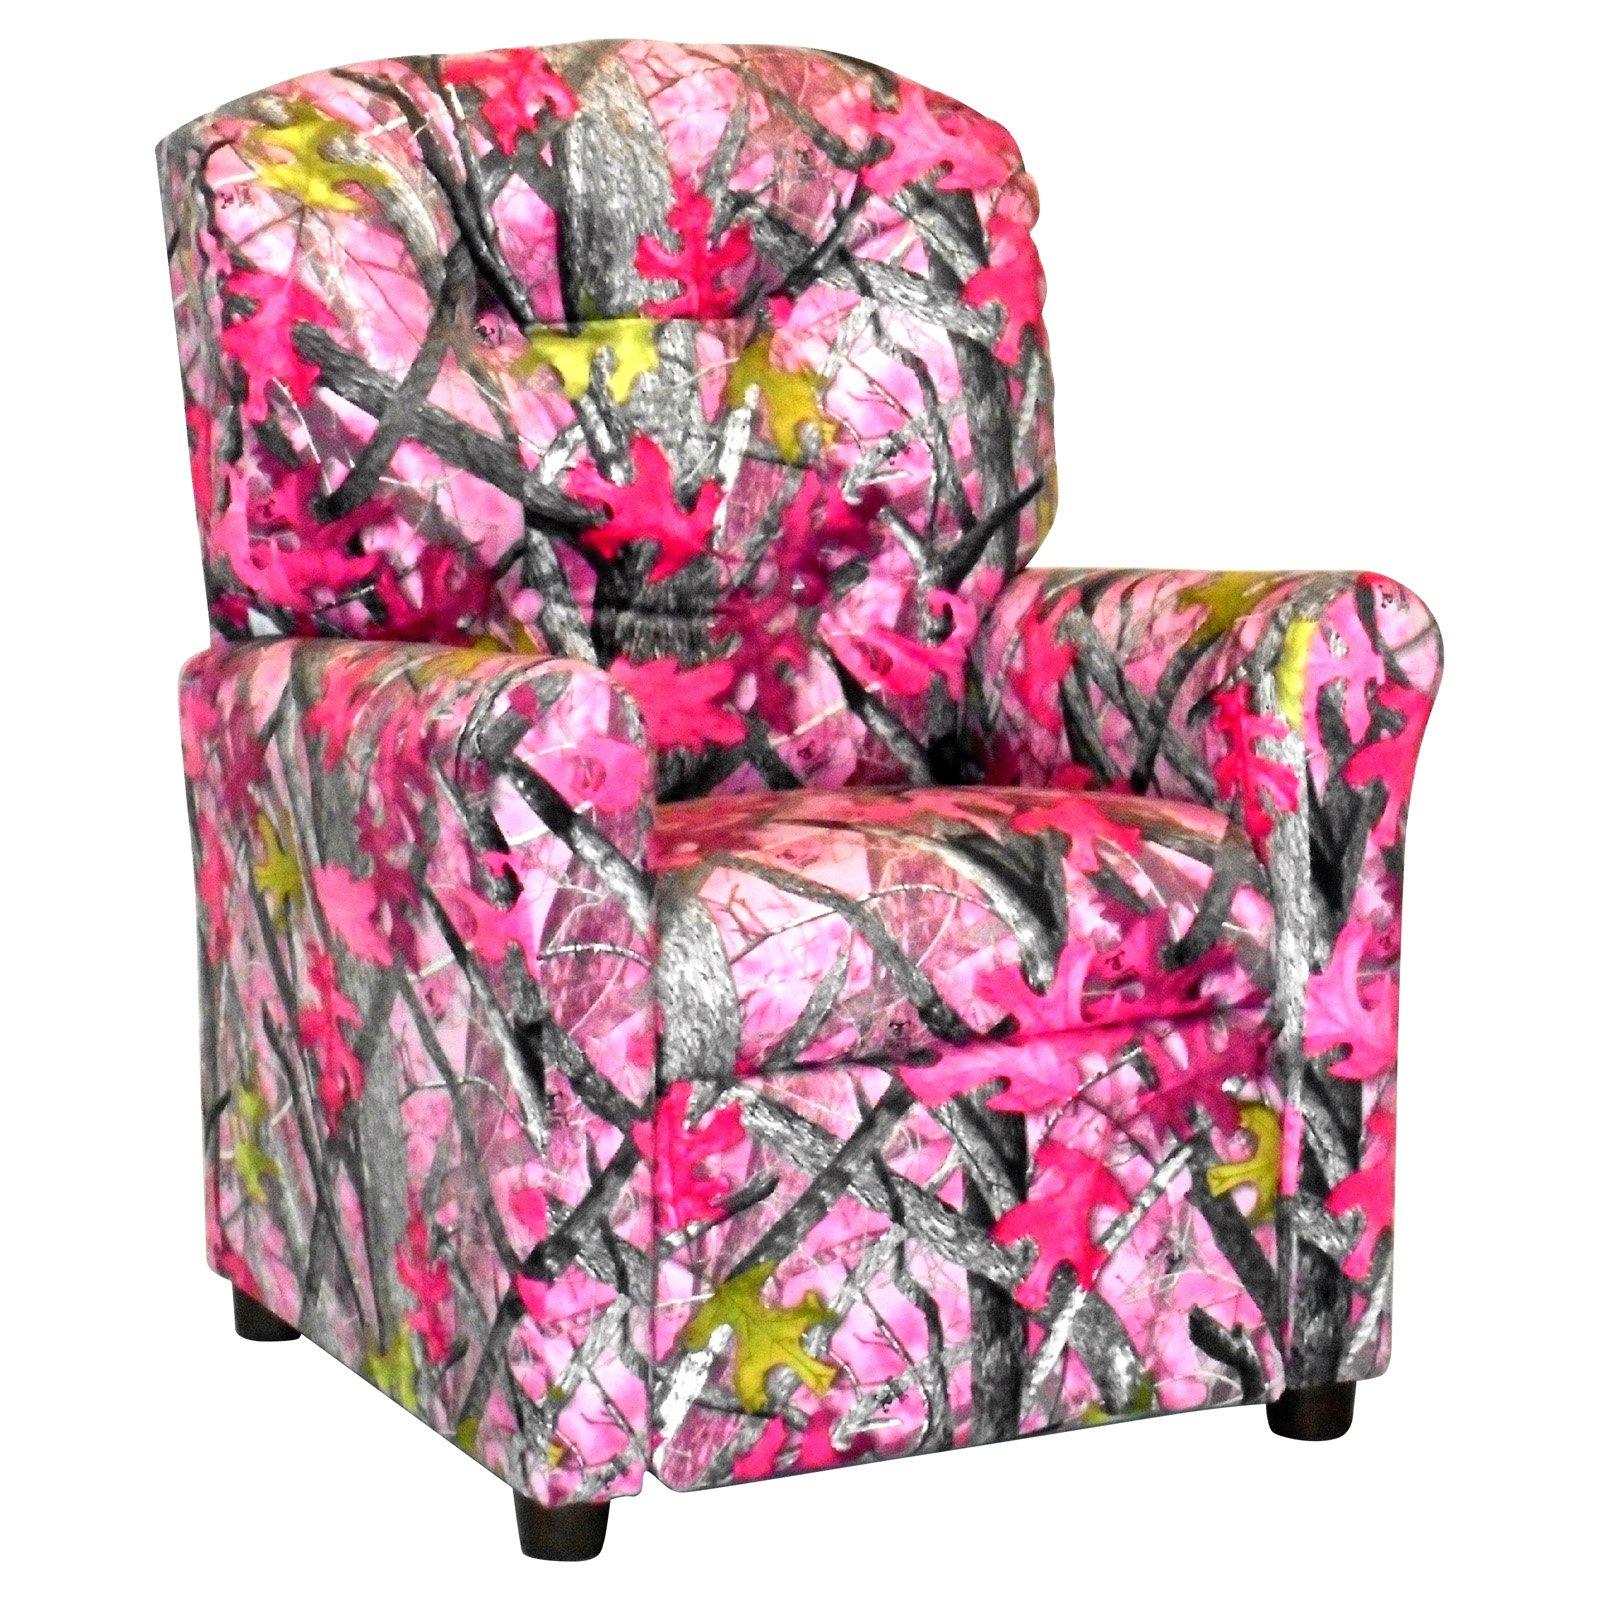 Brazil Furniture 4 Button Back Child Recliner   Sassy Camo Pink    Walmart.com